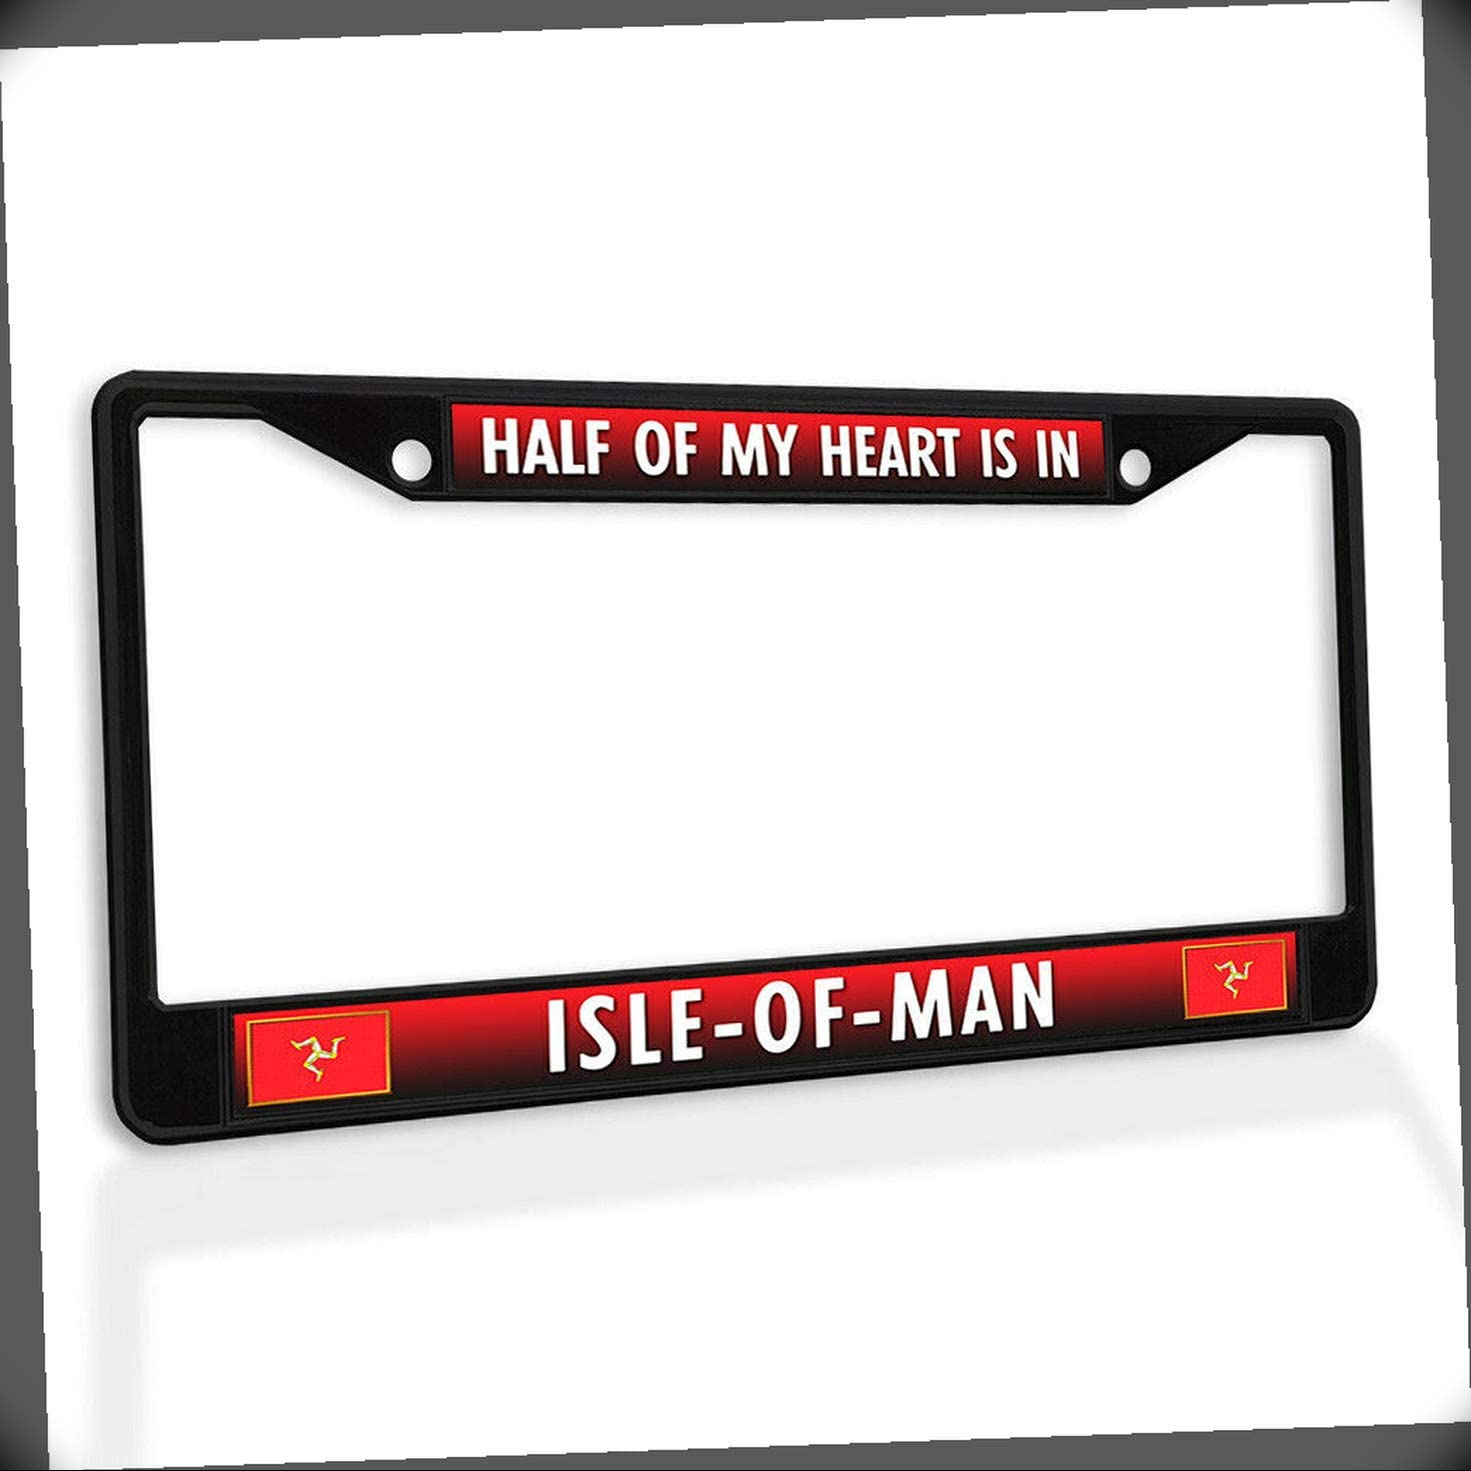 New Selling and selling License Plate Frame Half of Daily bargain sale Isle-of-Man in My Heart Metal is